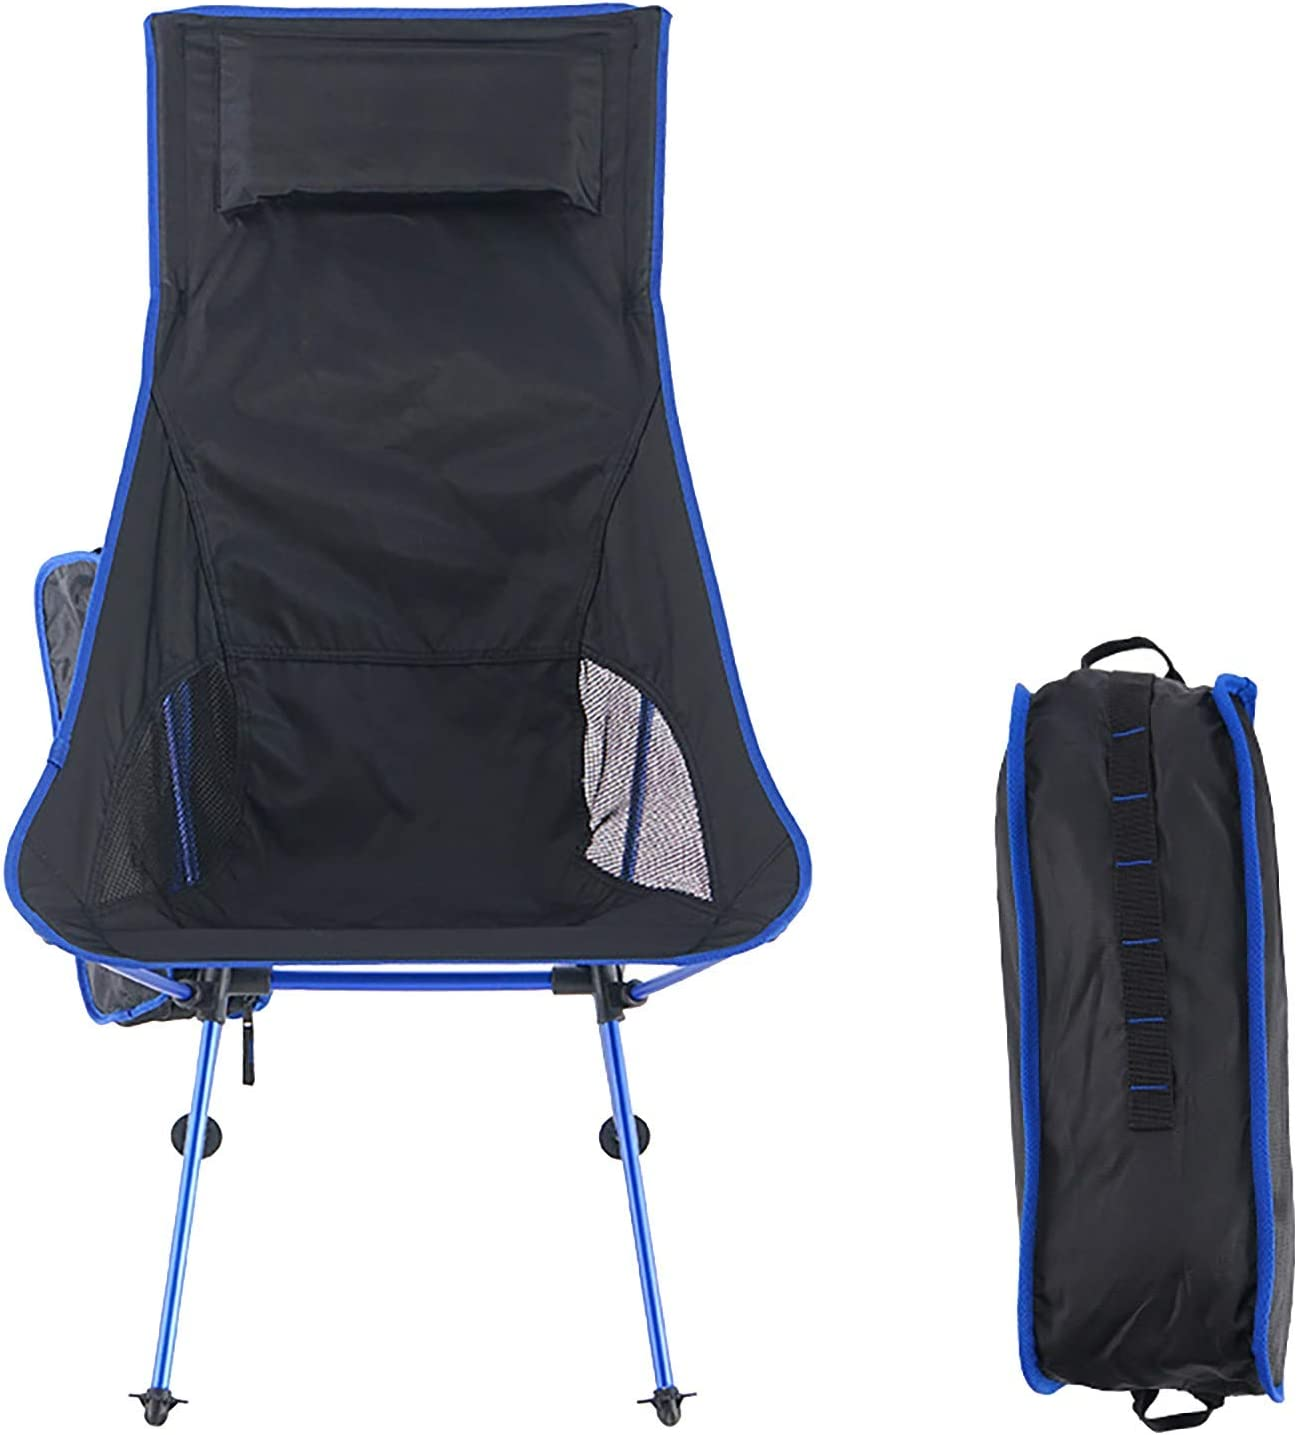 FFYY Max 72% OFF Camping Rare Chair Portable